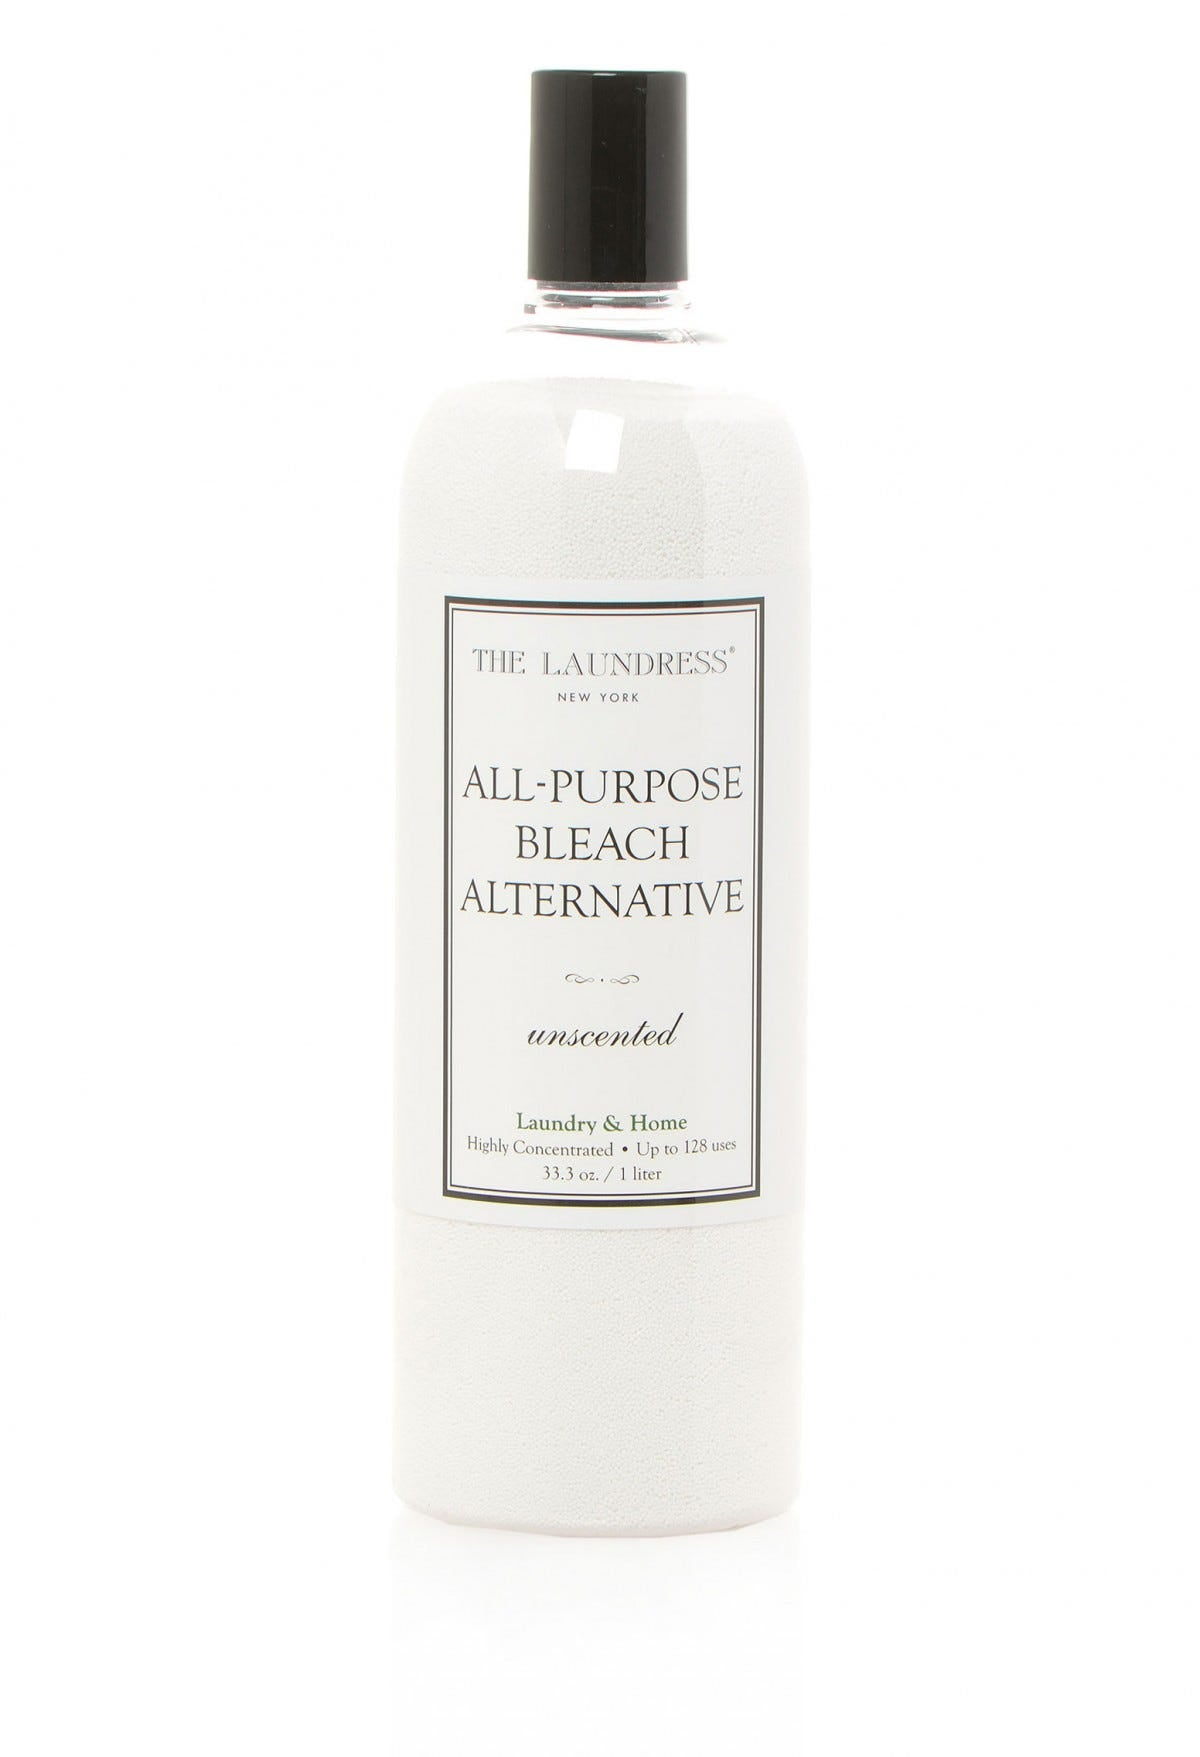 All-Purpose Bleach Alternative